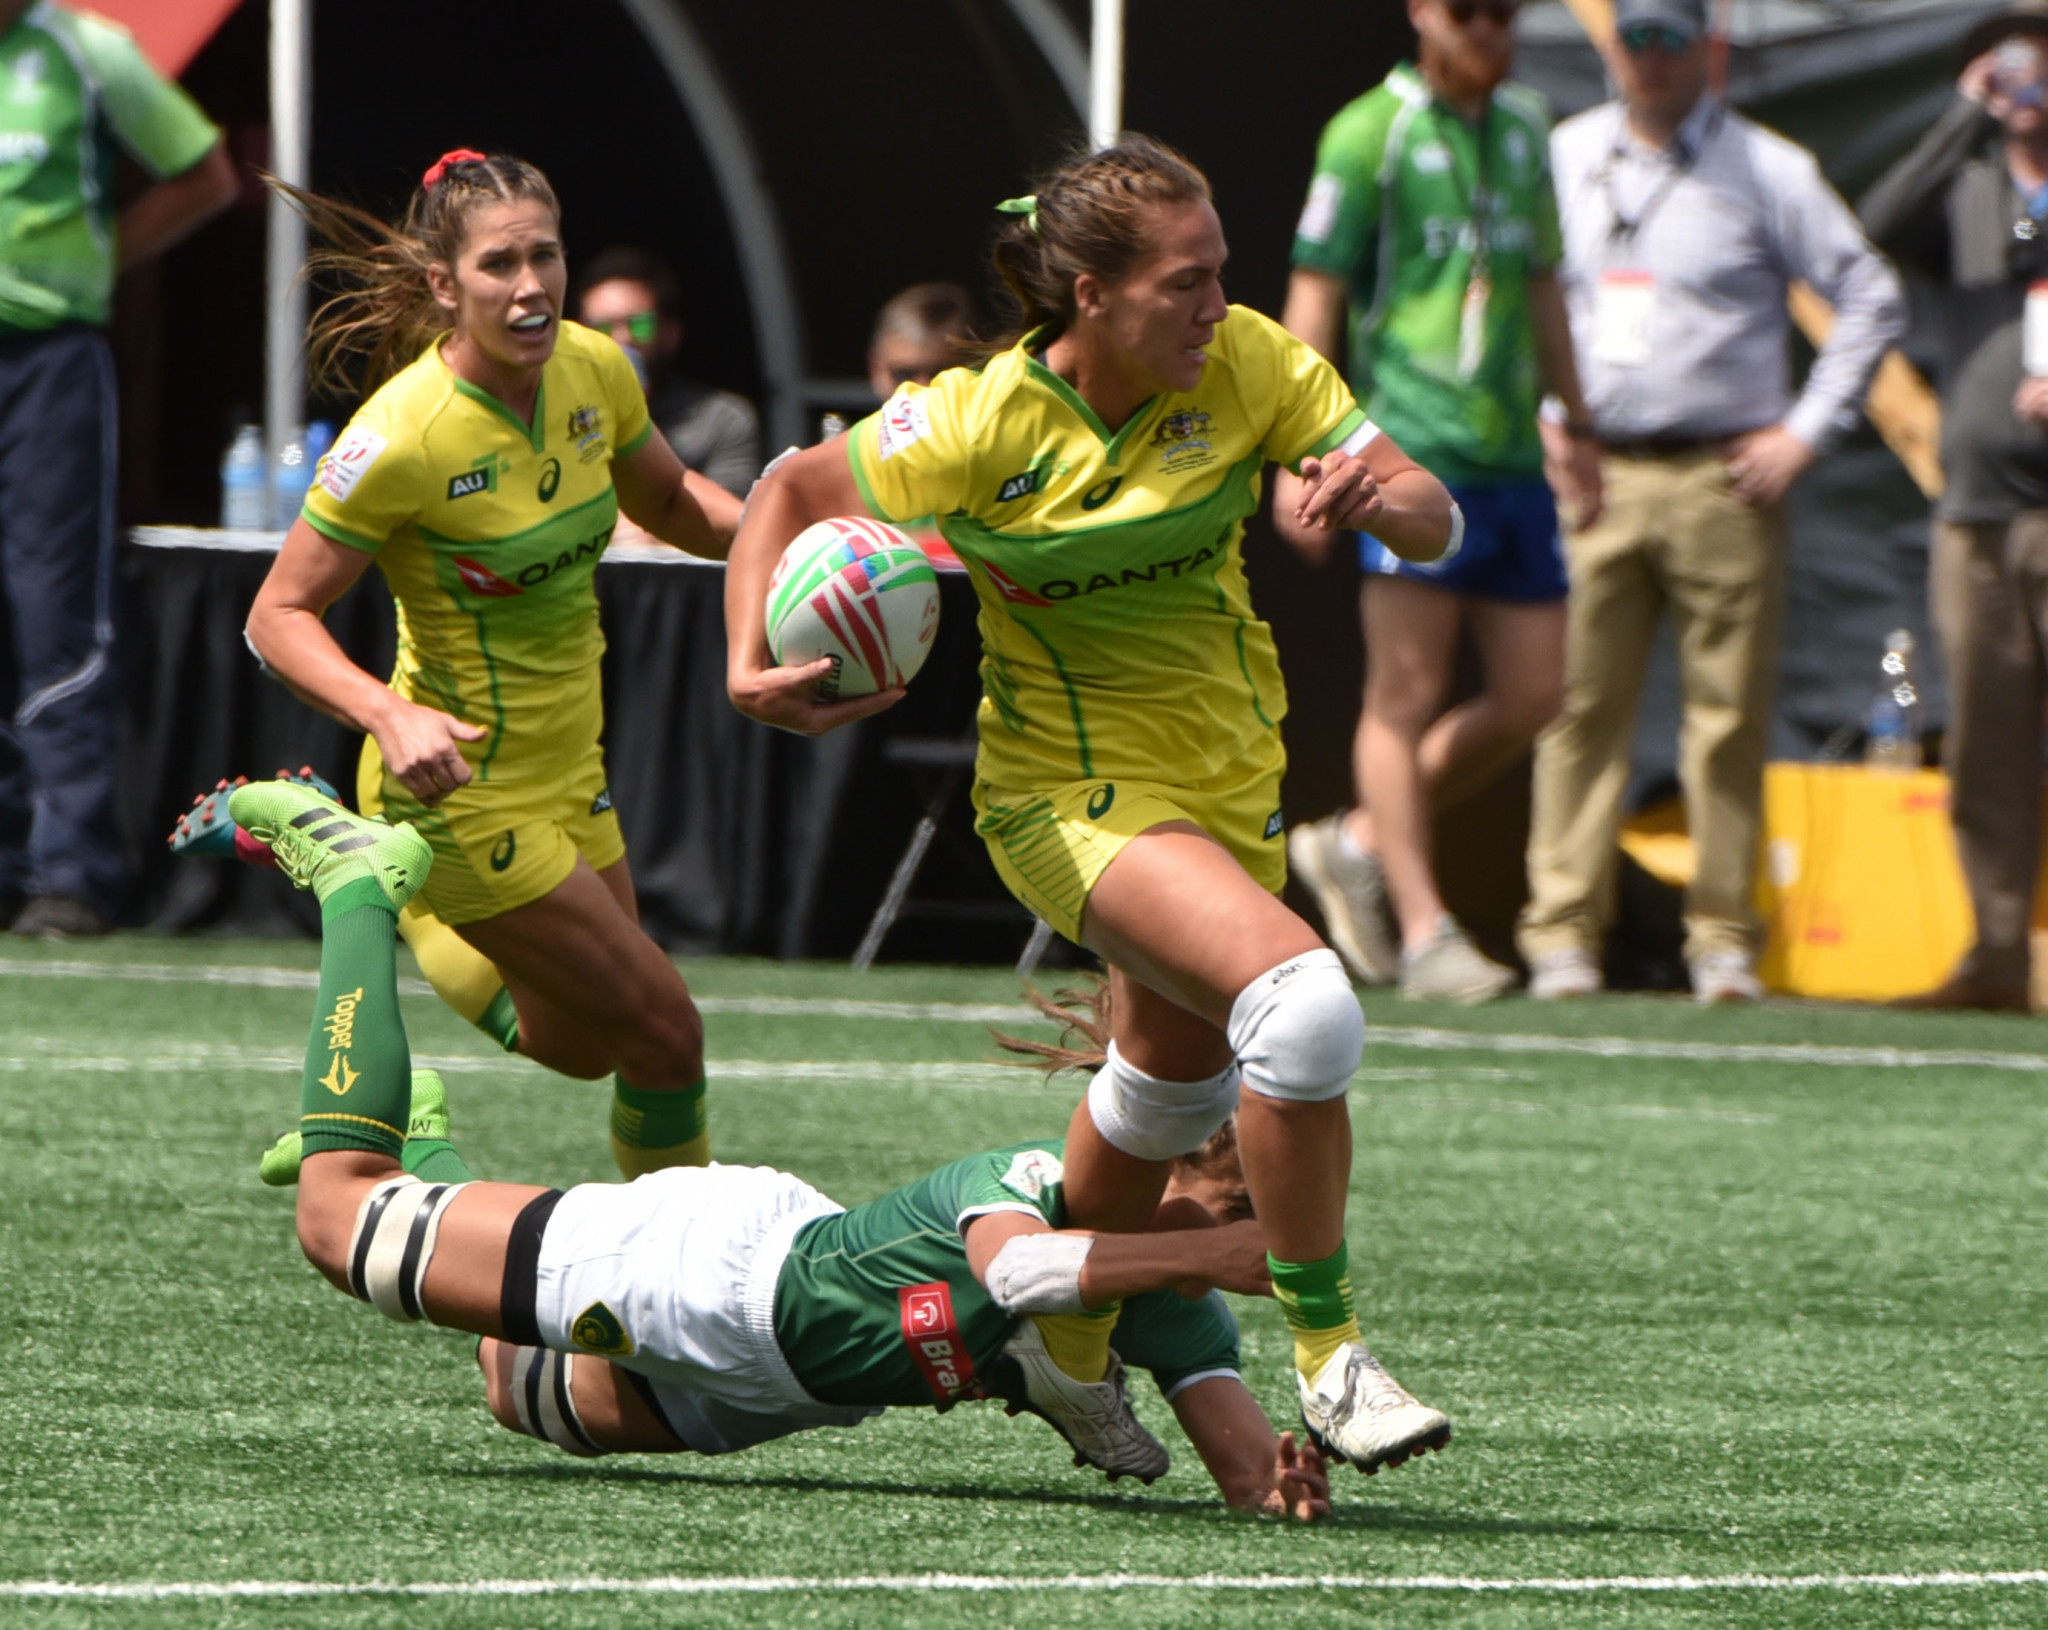 Australia's Chef de Mission pleased to see rugby sevens and archery teams reach Tokyo 2020